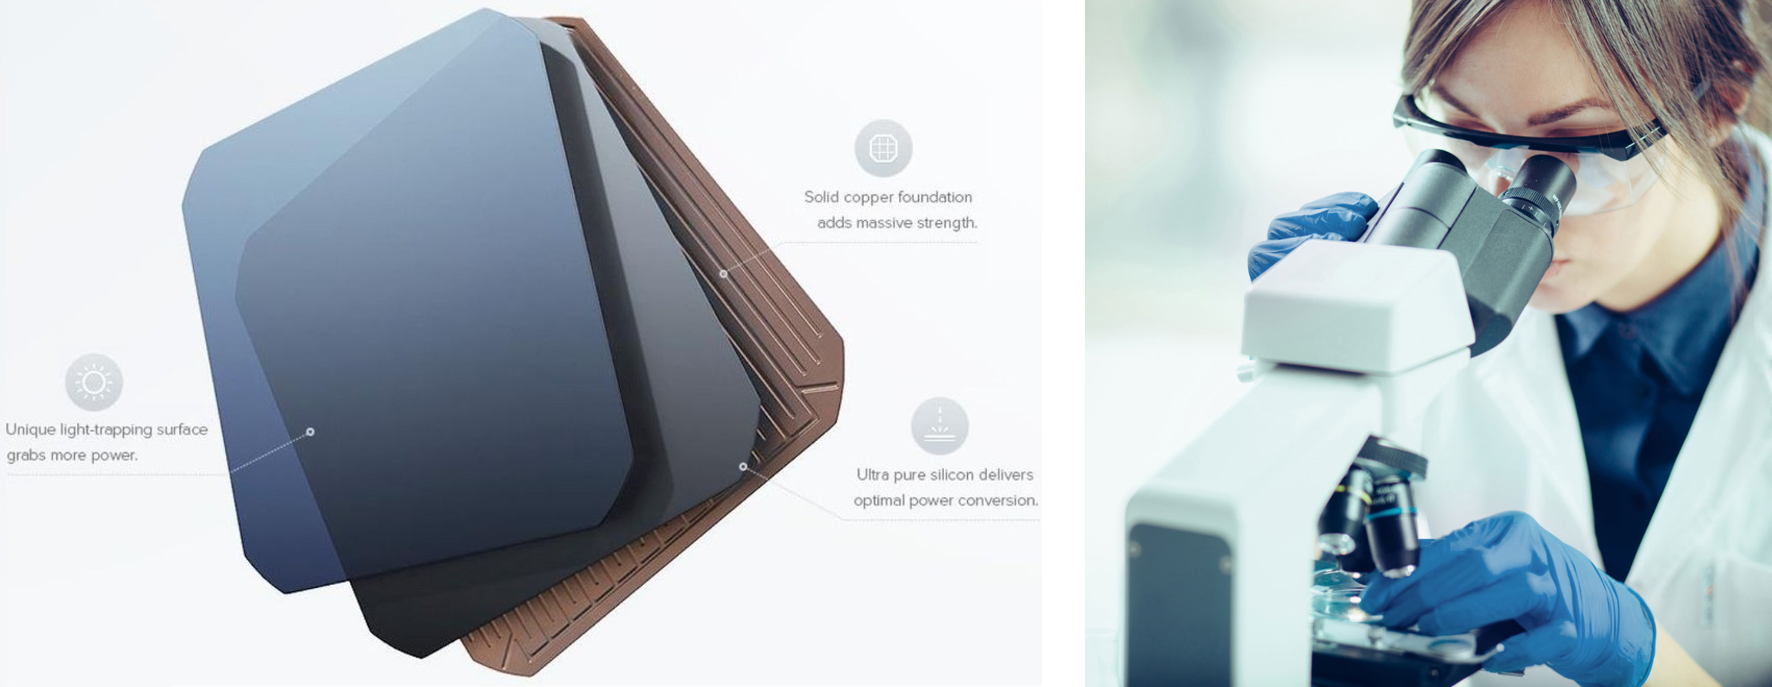 SUNSLICE SOLAR CHARGER WITH SUNPOWER CELL TECHNOLOGY